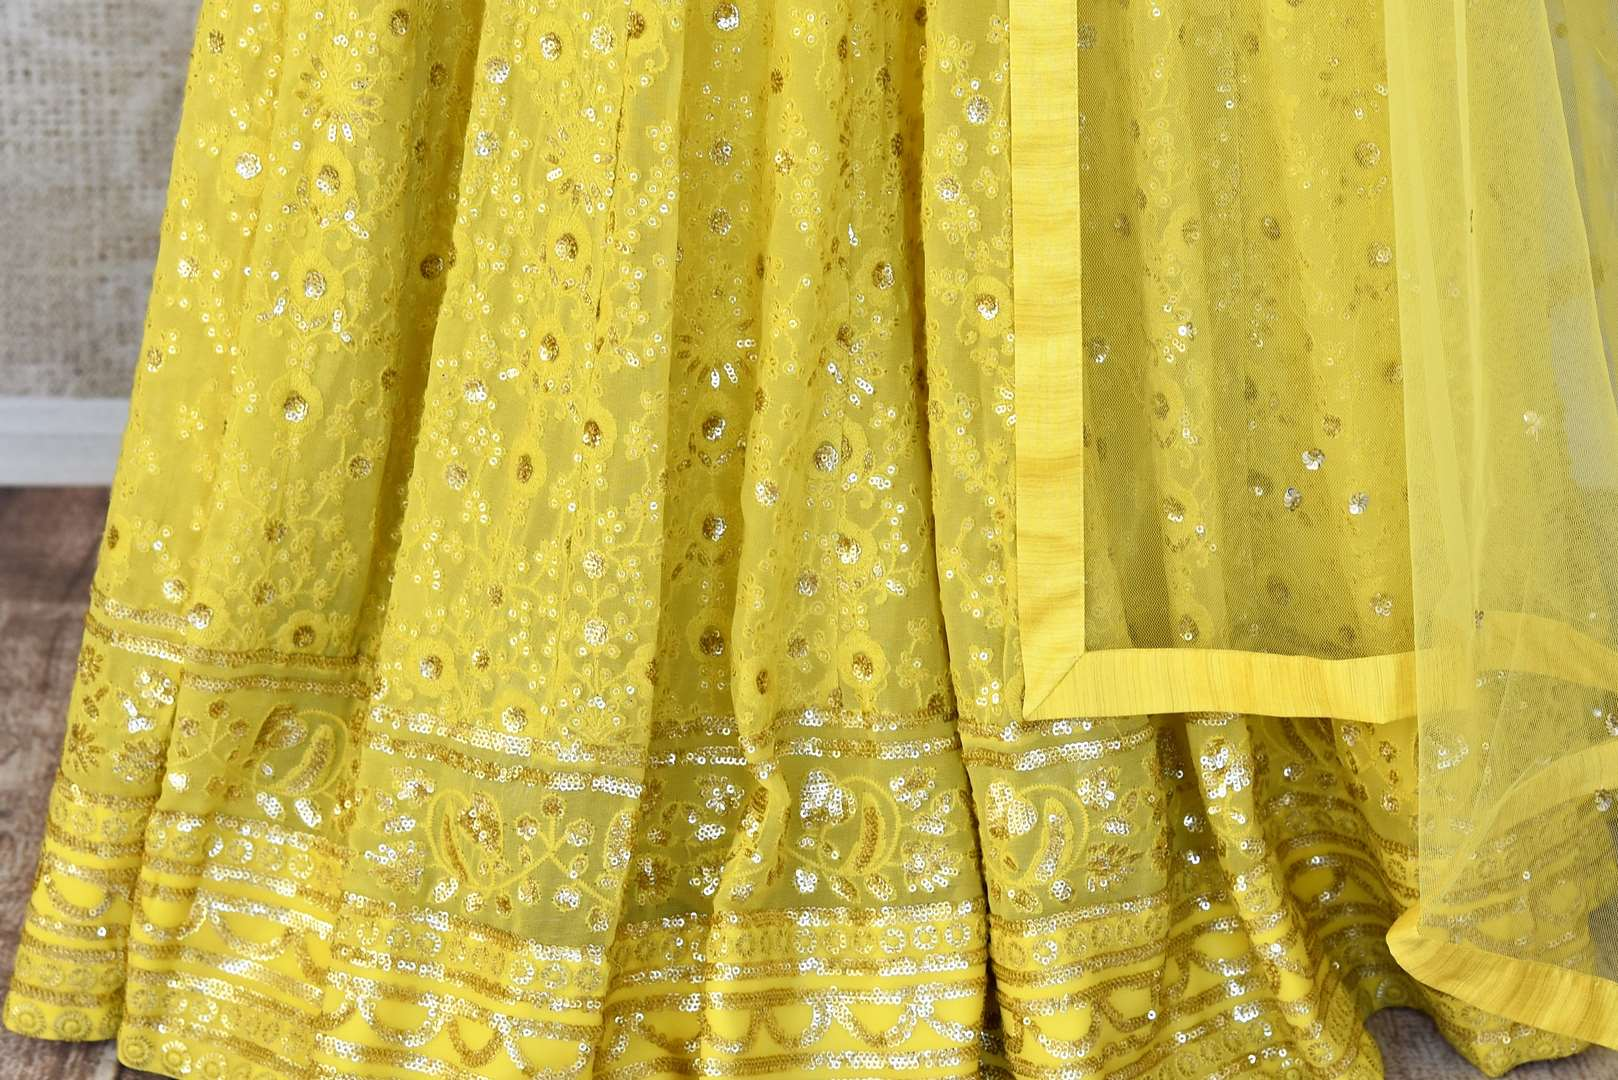 Buy lemon yellow embroidered georgette lehenga with dupatta online in USA. Shop more such Indian designer lehengas, designer Indian dresses, wedding dresses in USA from Pure Elegance clothing fashion store this wedding season.-bottom